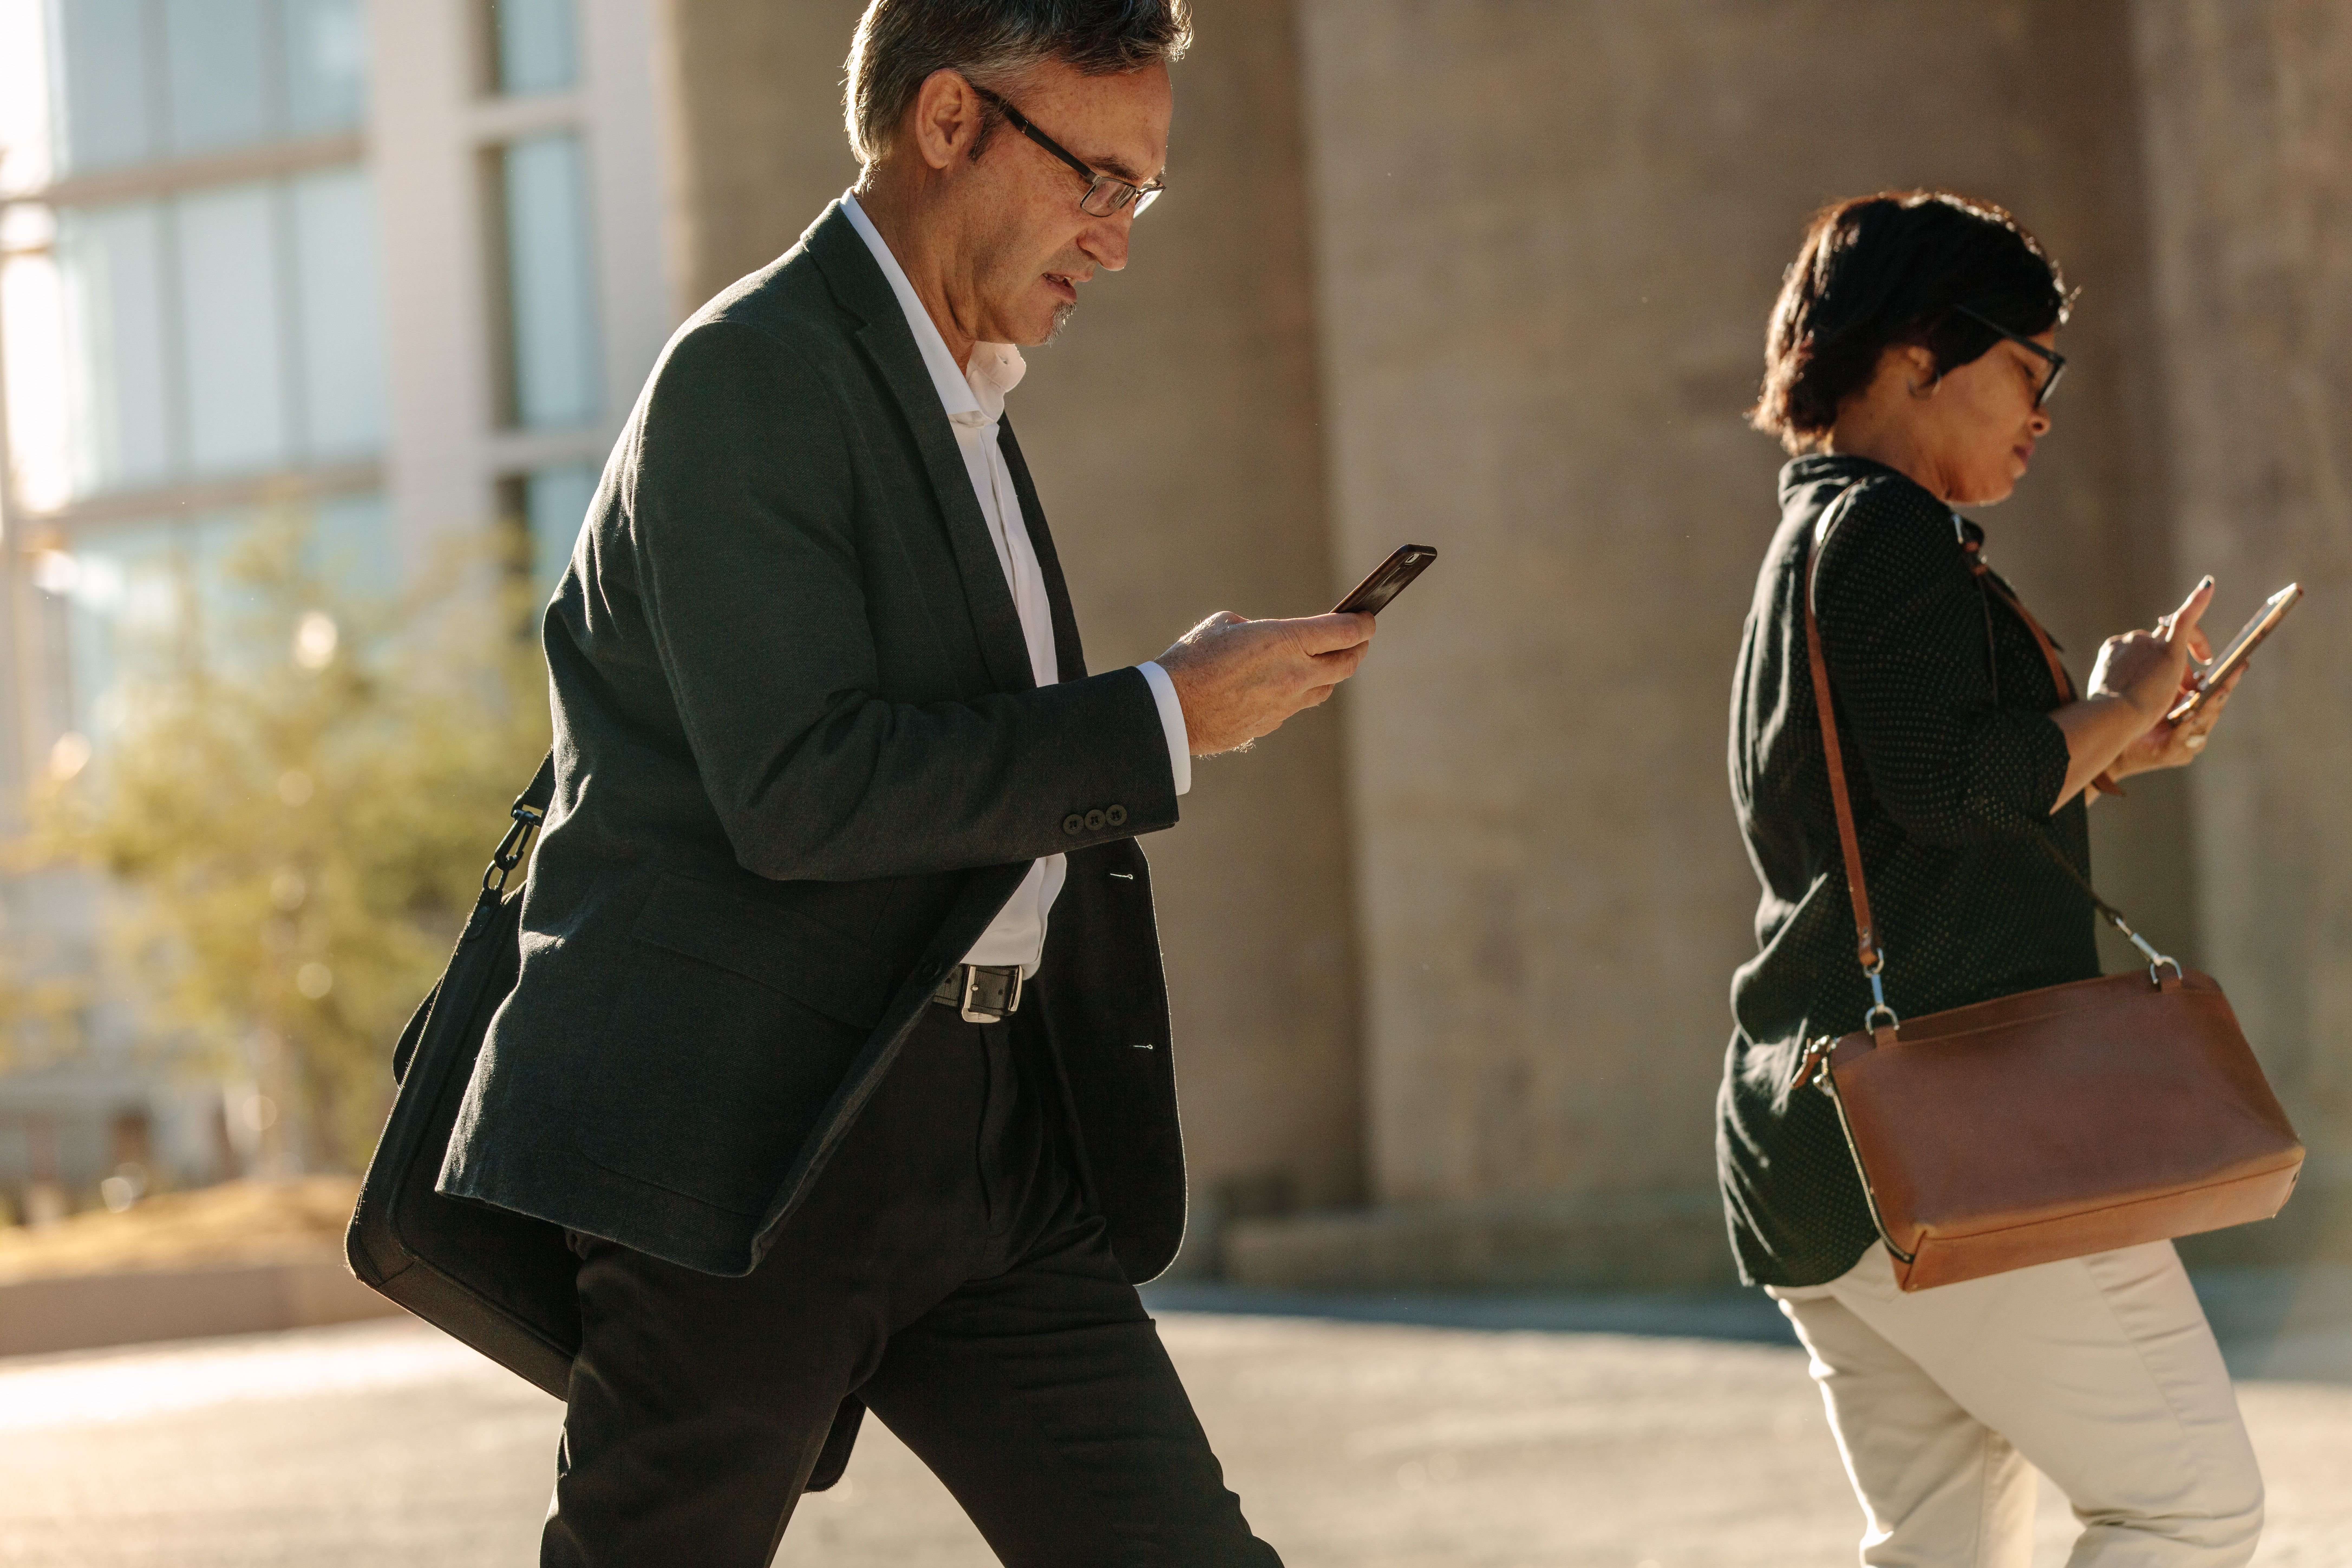 People walking while texting.   Source: Shutterstock